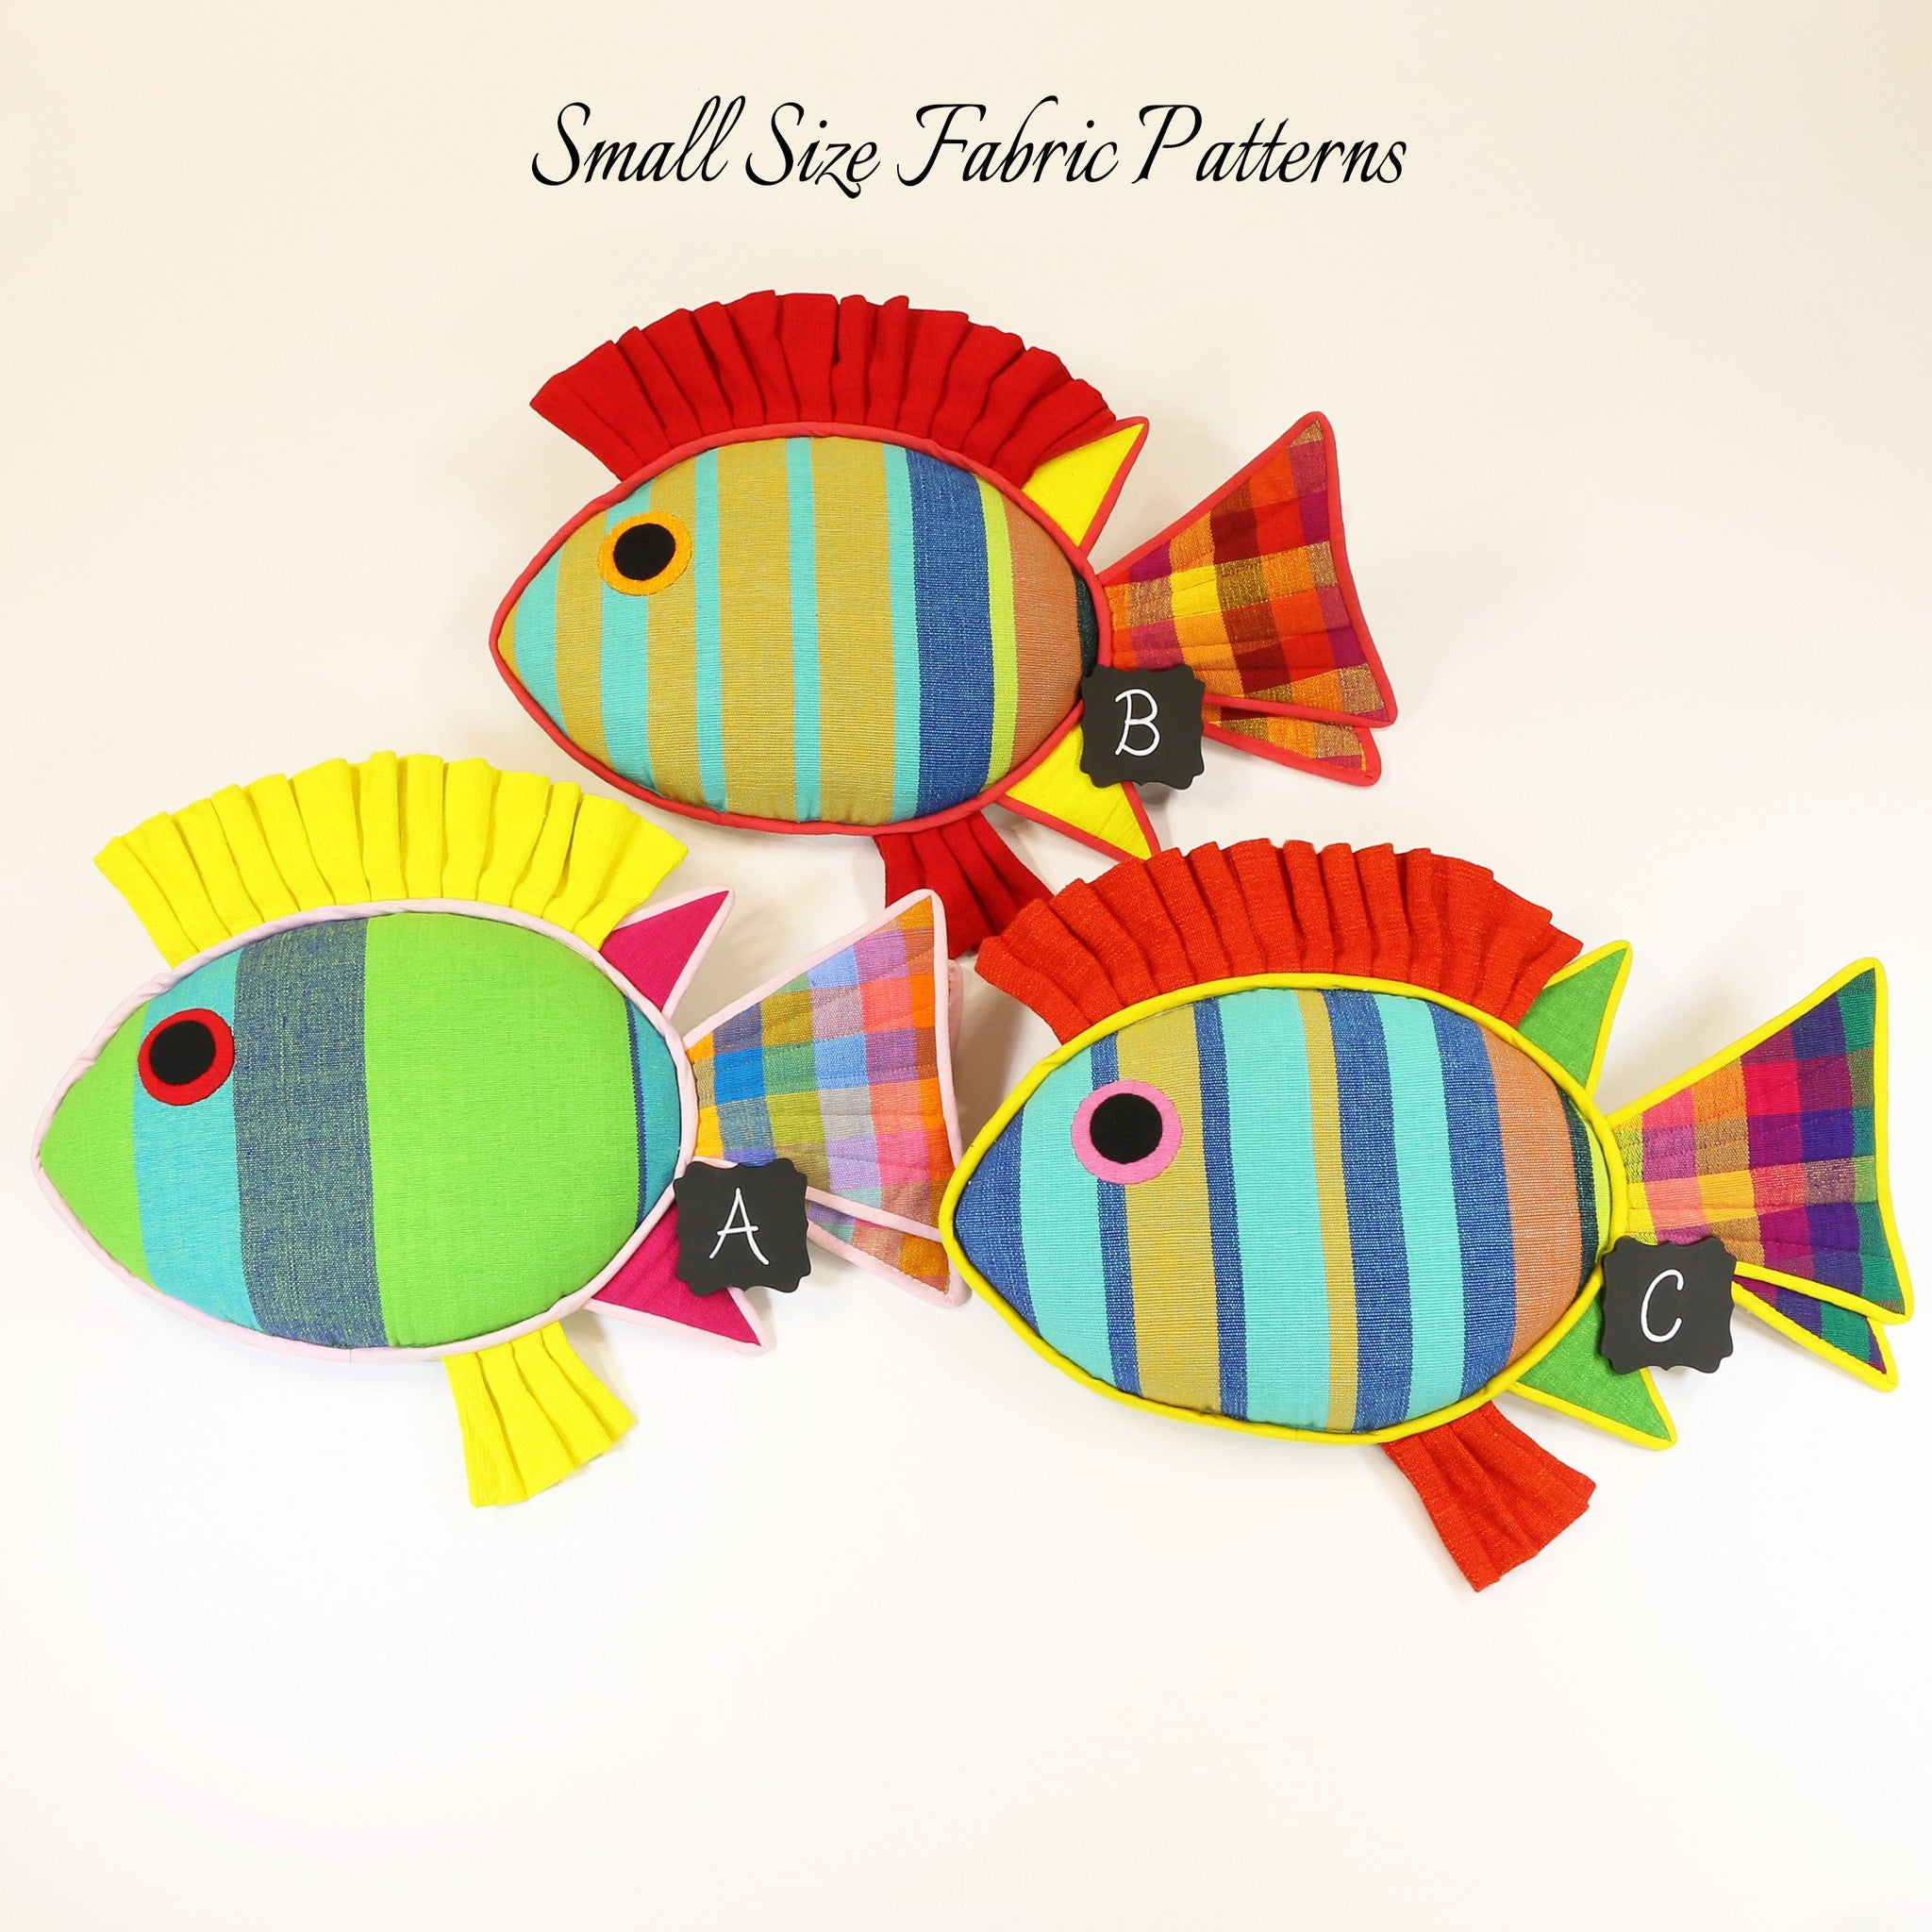 Reagan, the Rabbit Fish – all small size fabric patterns shown